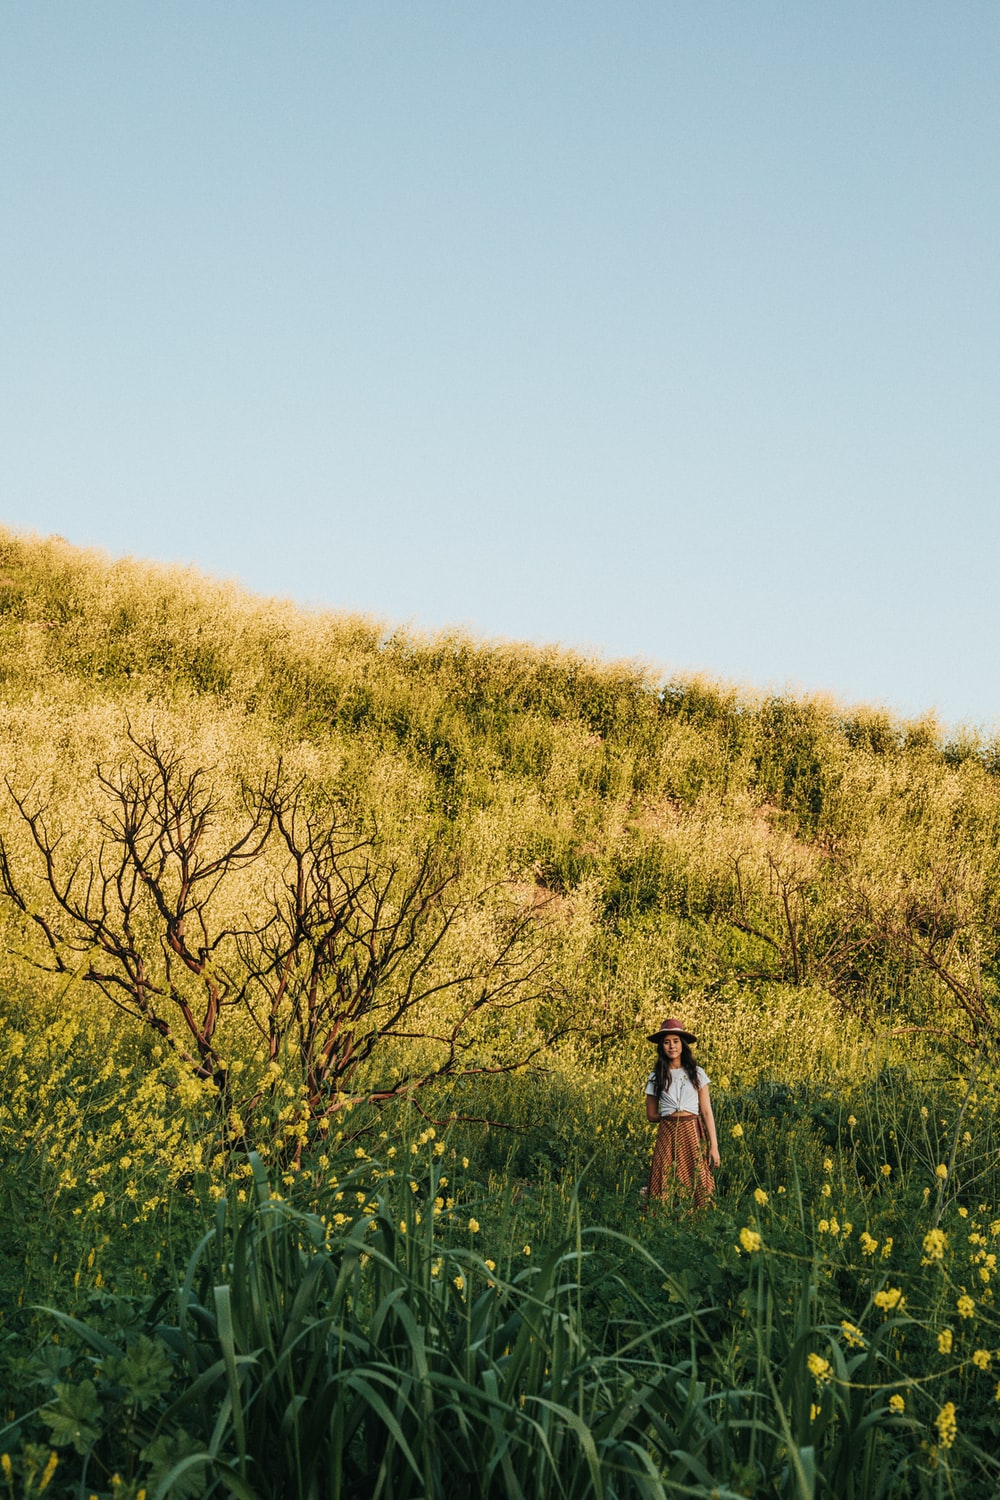 woman standing near yellow petaled flowers during daytime